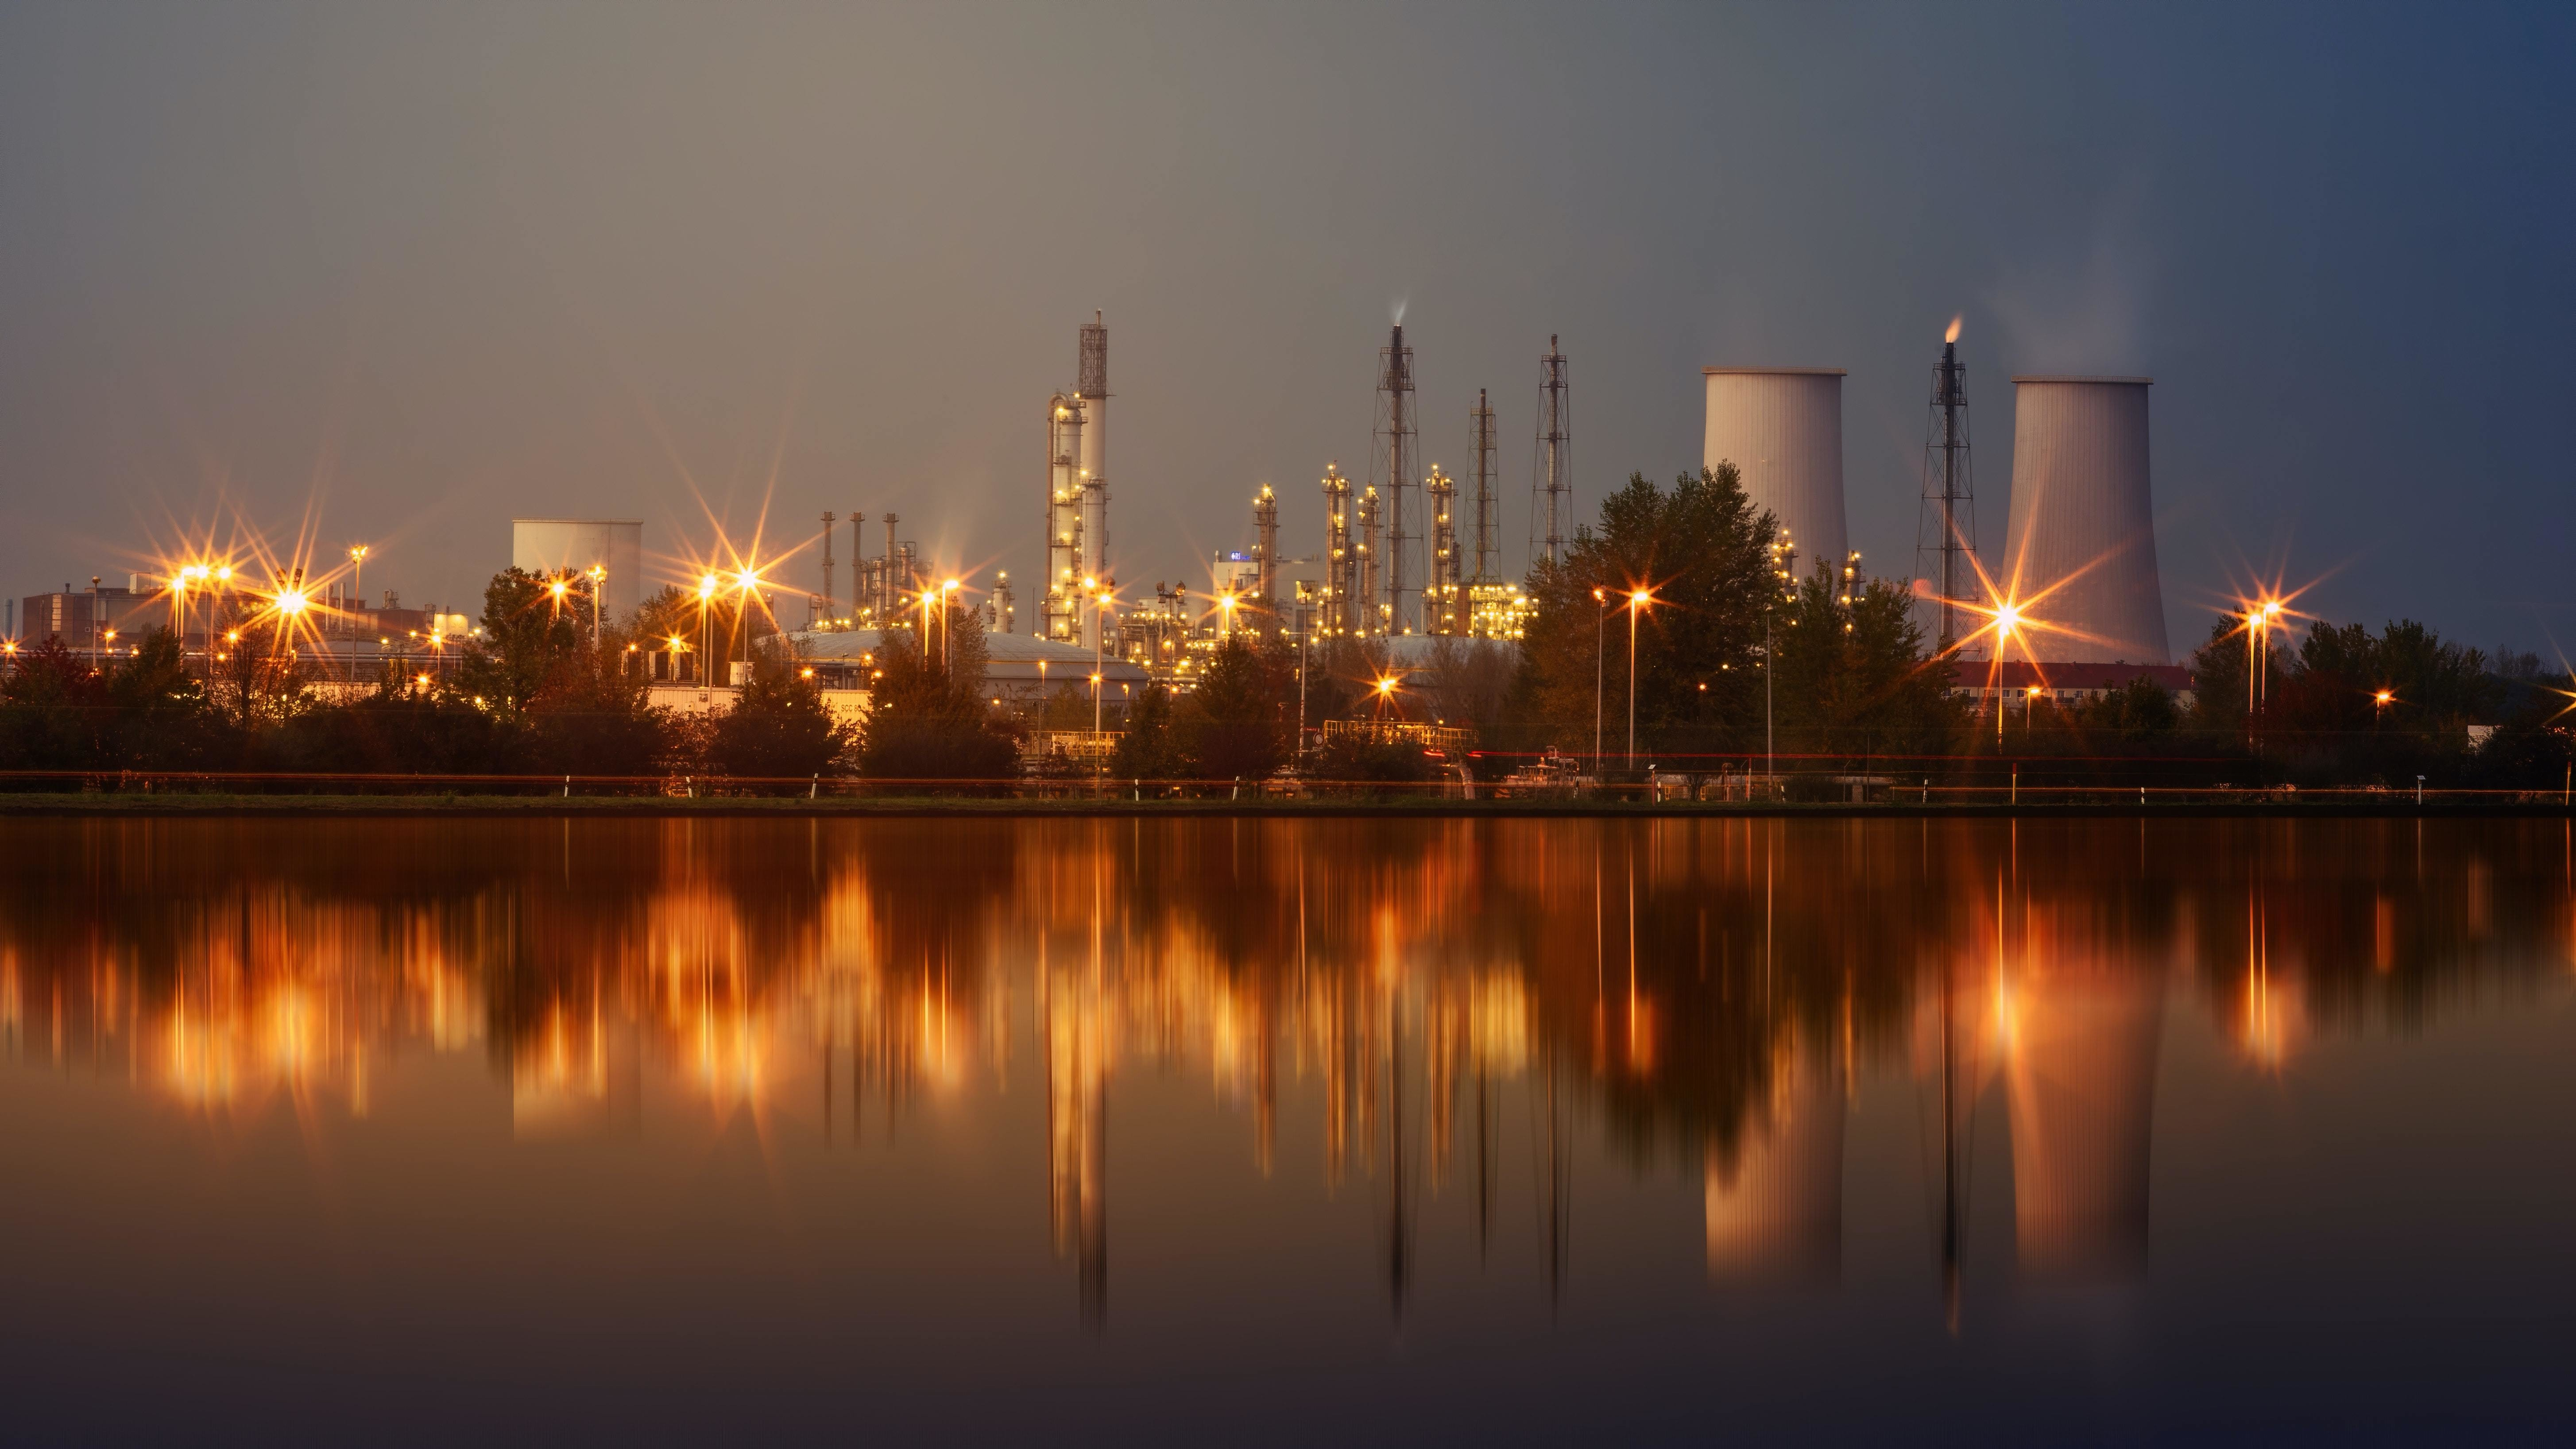 Oil refinery by night.